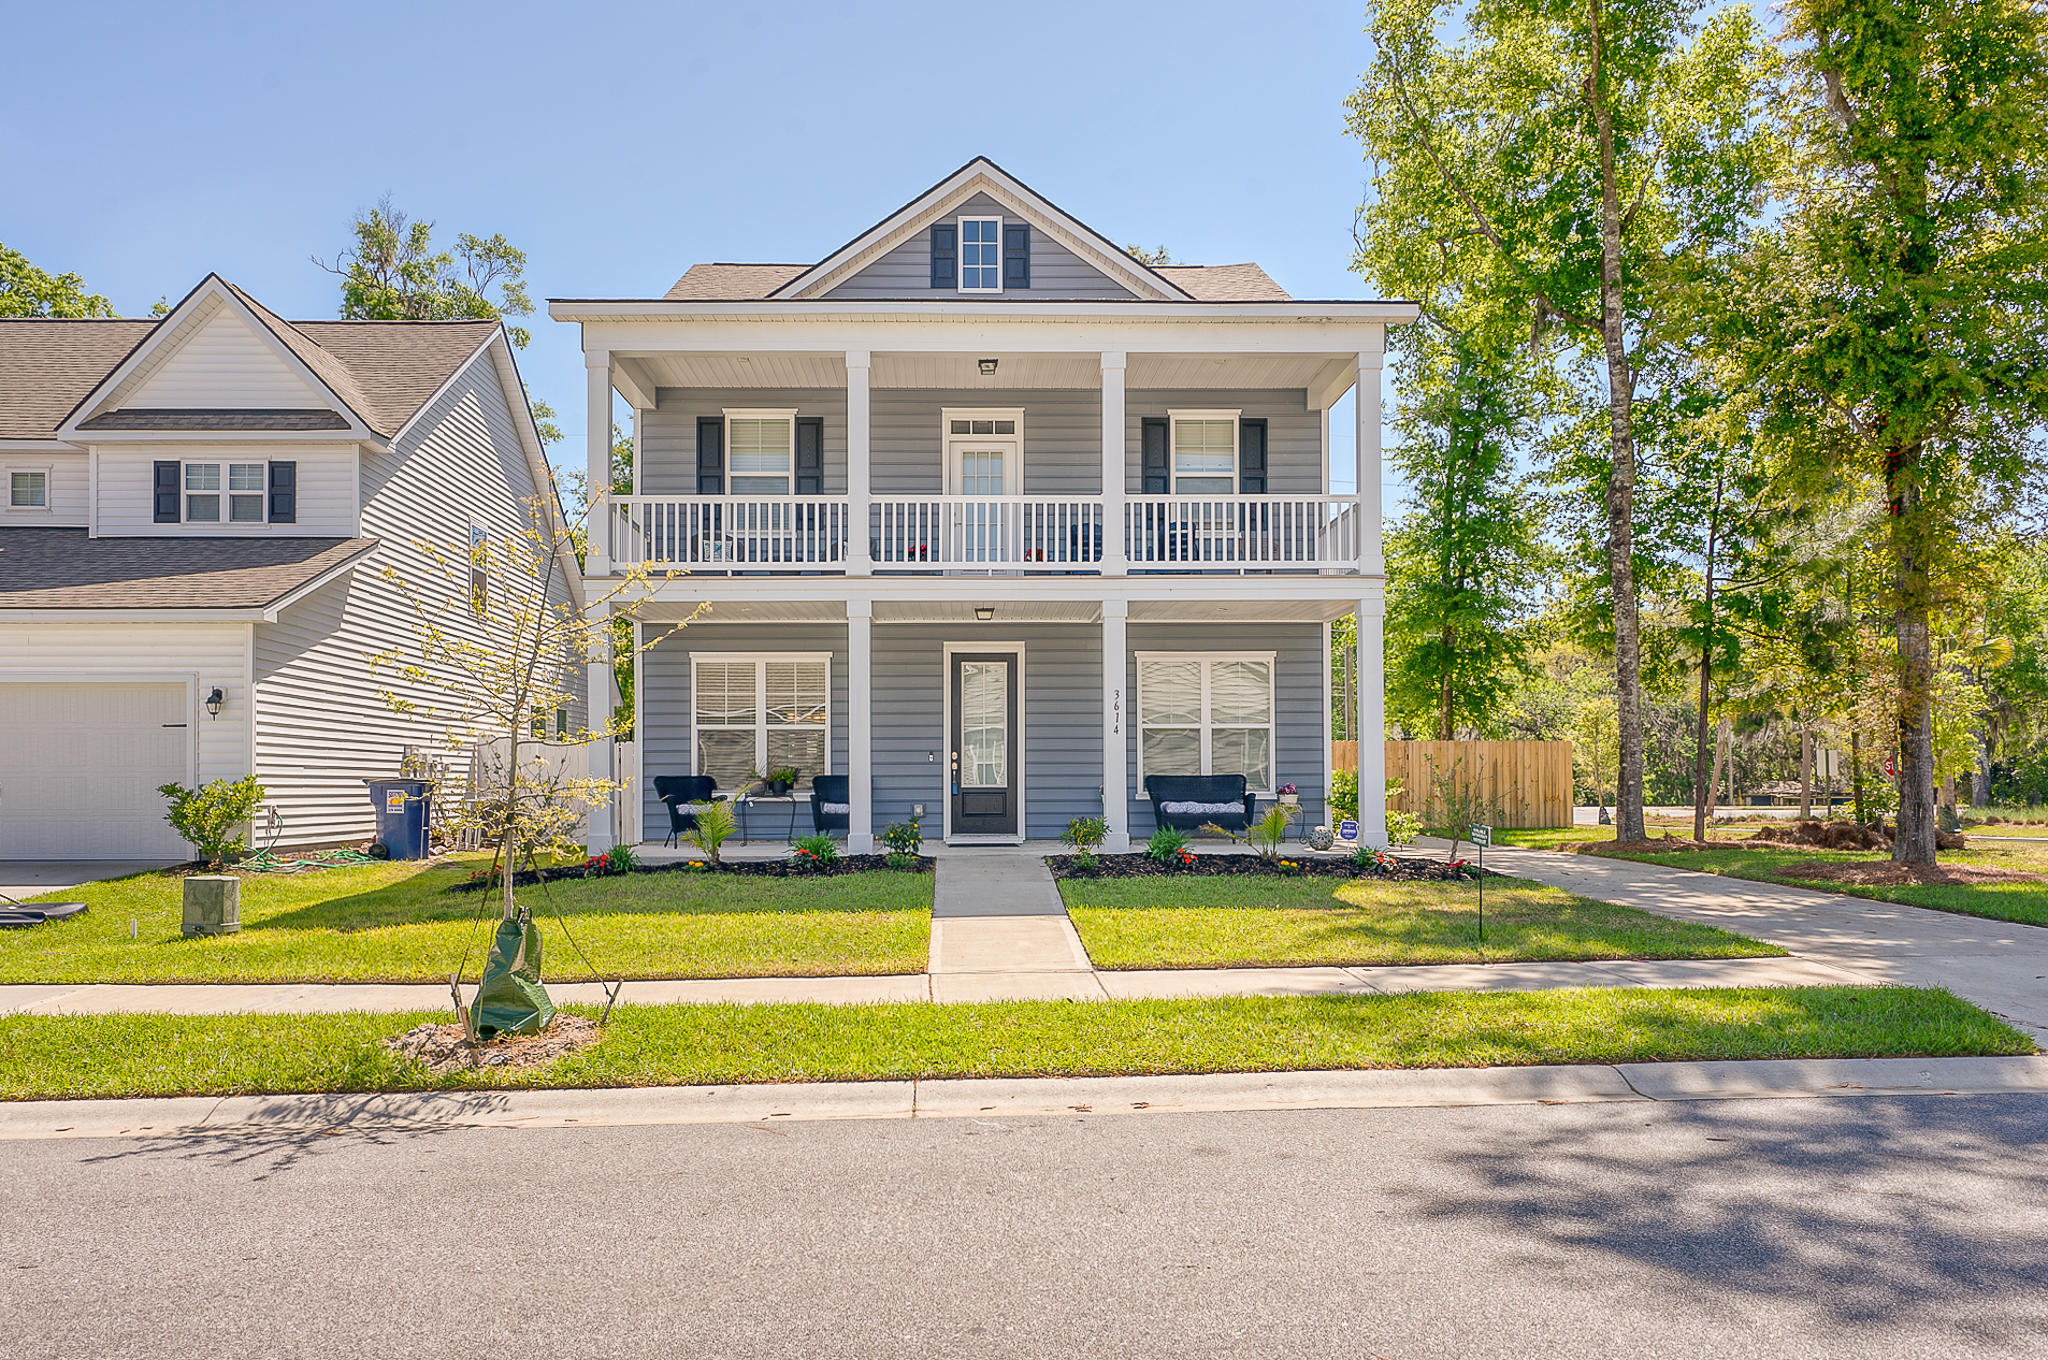 Photo of 3614 Oyster Bluff Drive, Beaufort, SC 29907